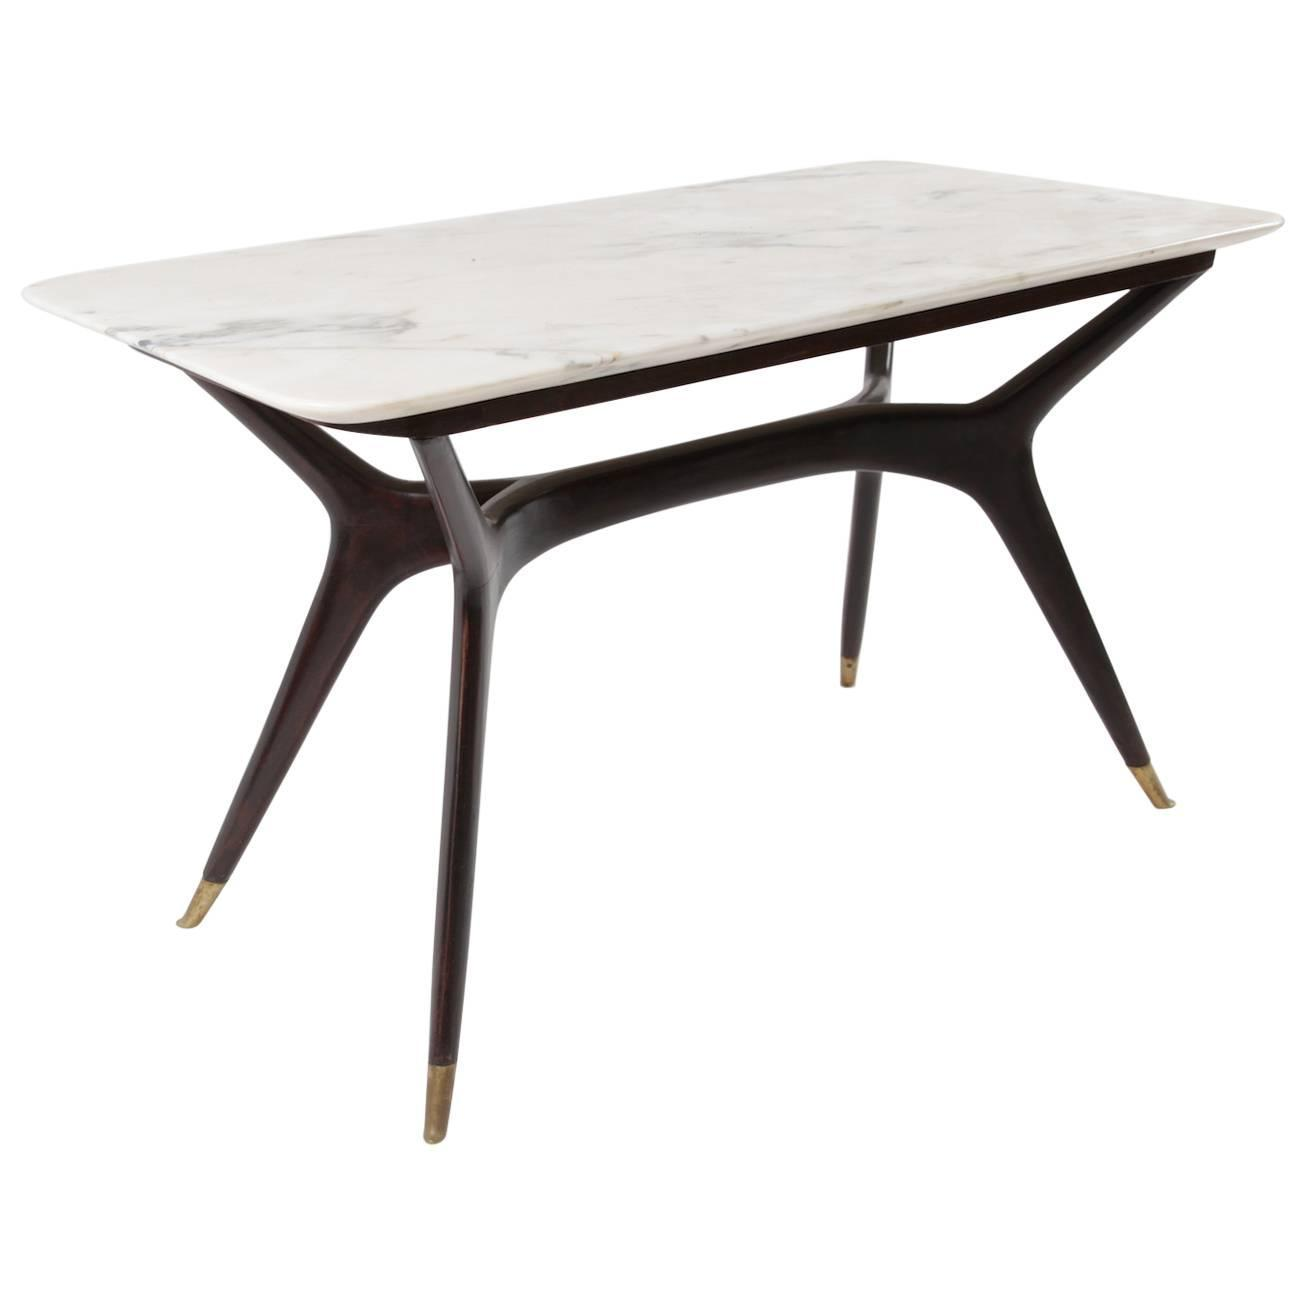 Italian Marble Coffee Table By Ico Parisi Circa 1955 For Sale At 1stdibs